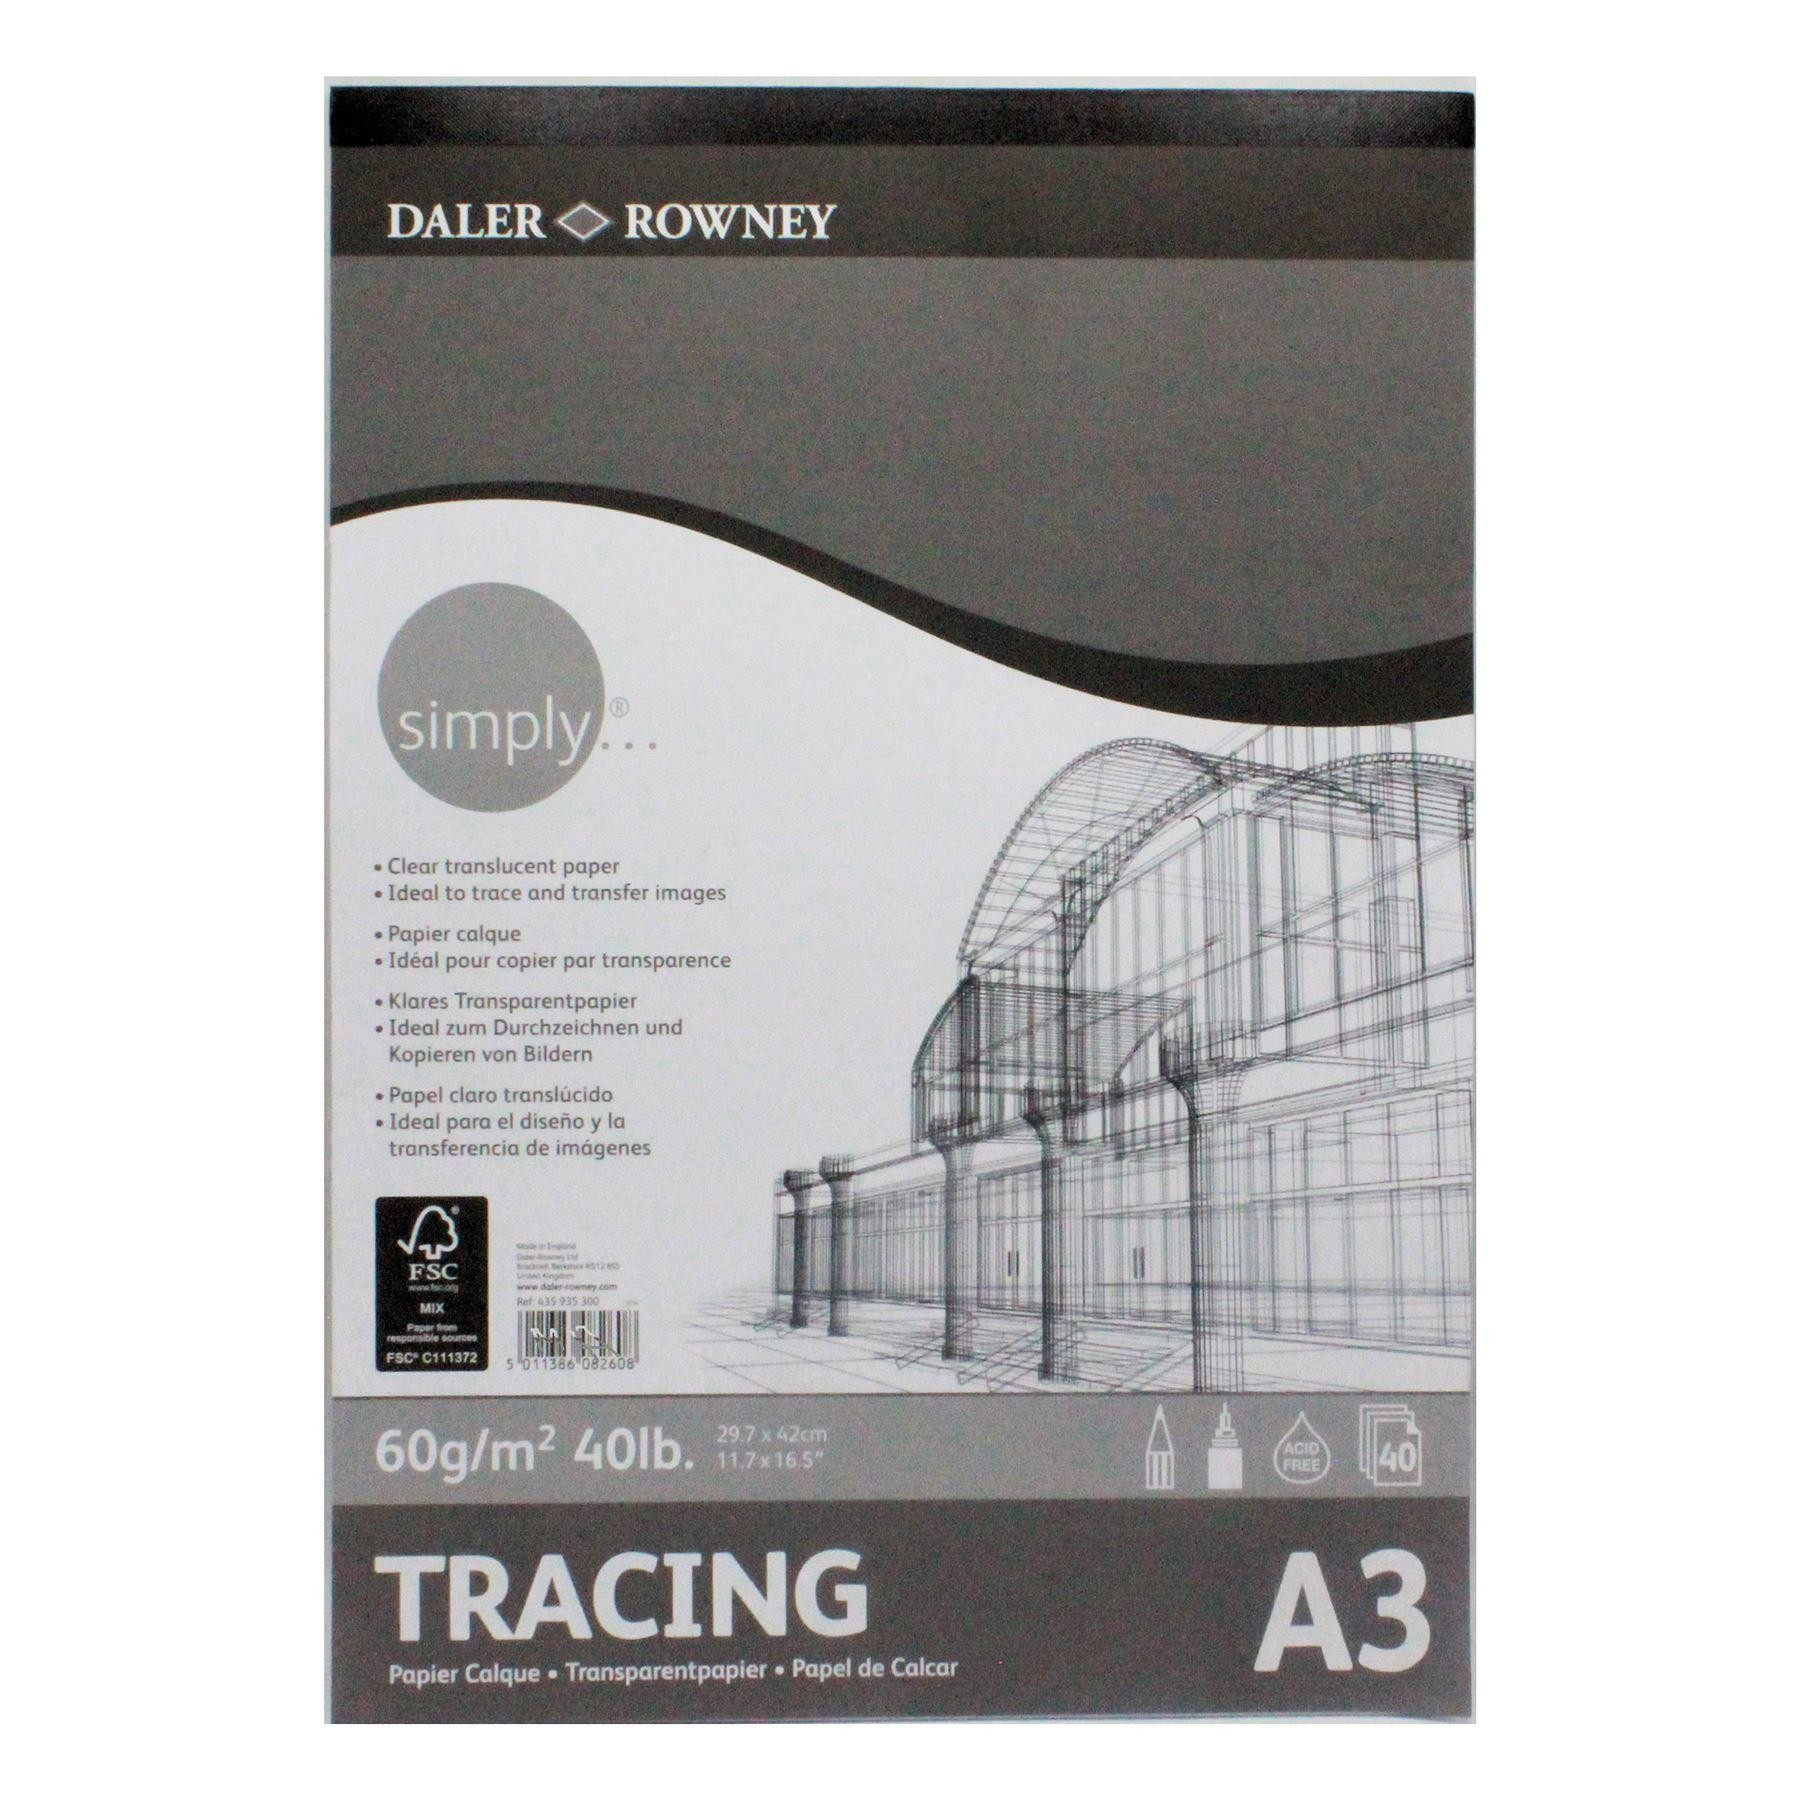 Daler rowney tracing paper